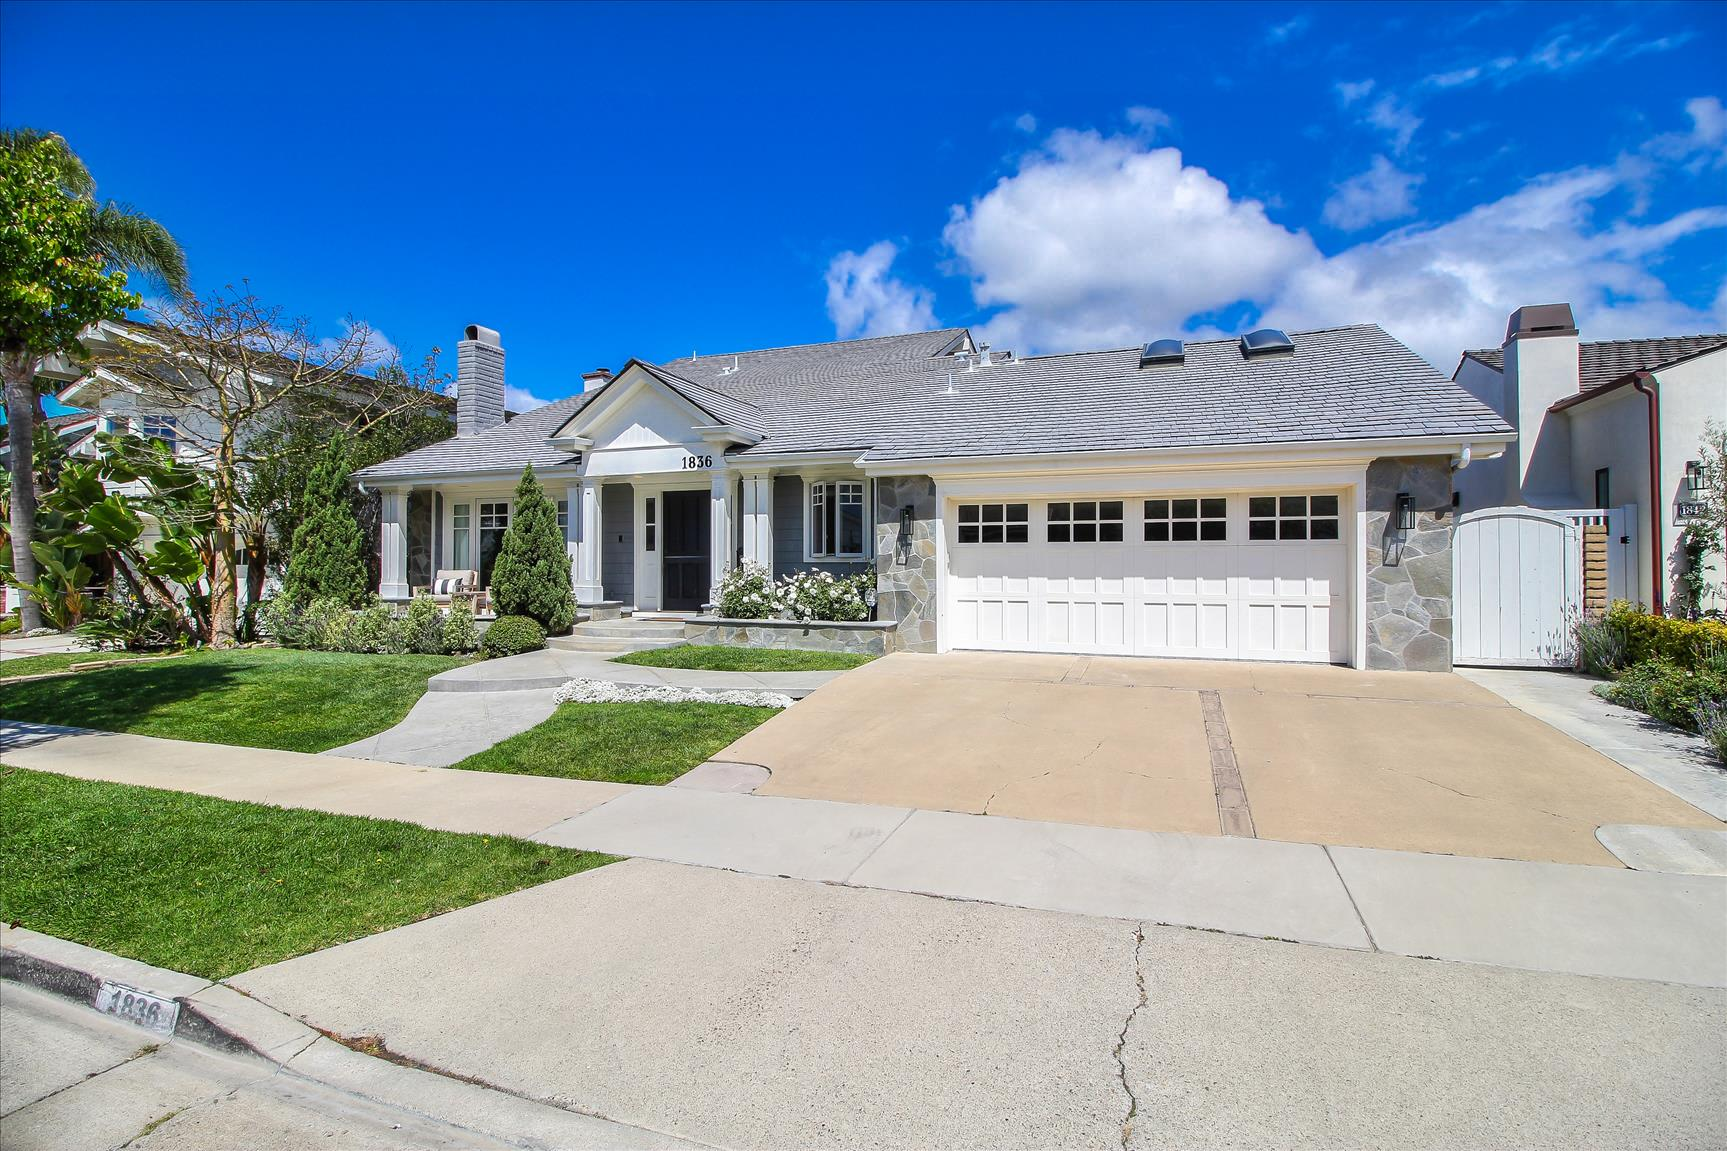 1836 Port Barmouth Pl, Newport Beach, CA  926605.jpg